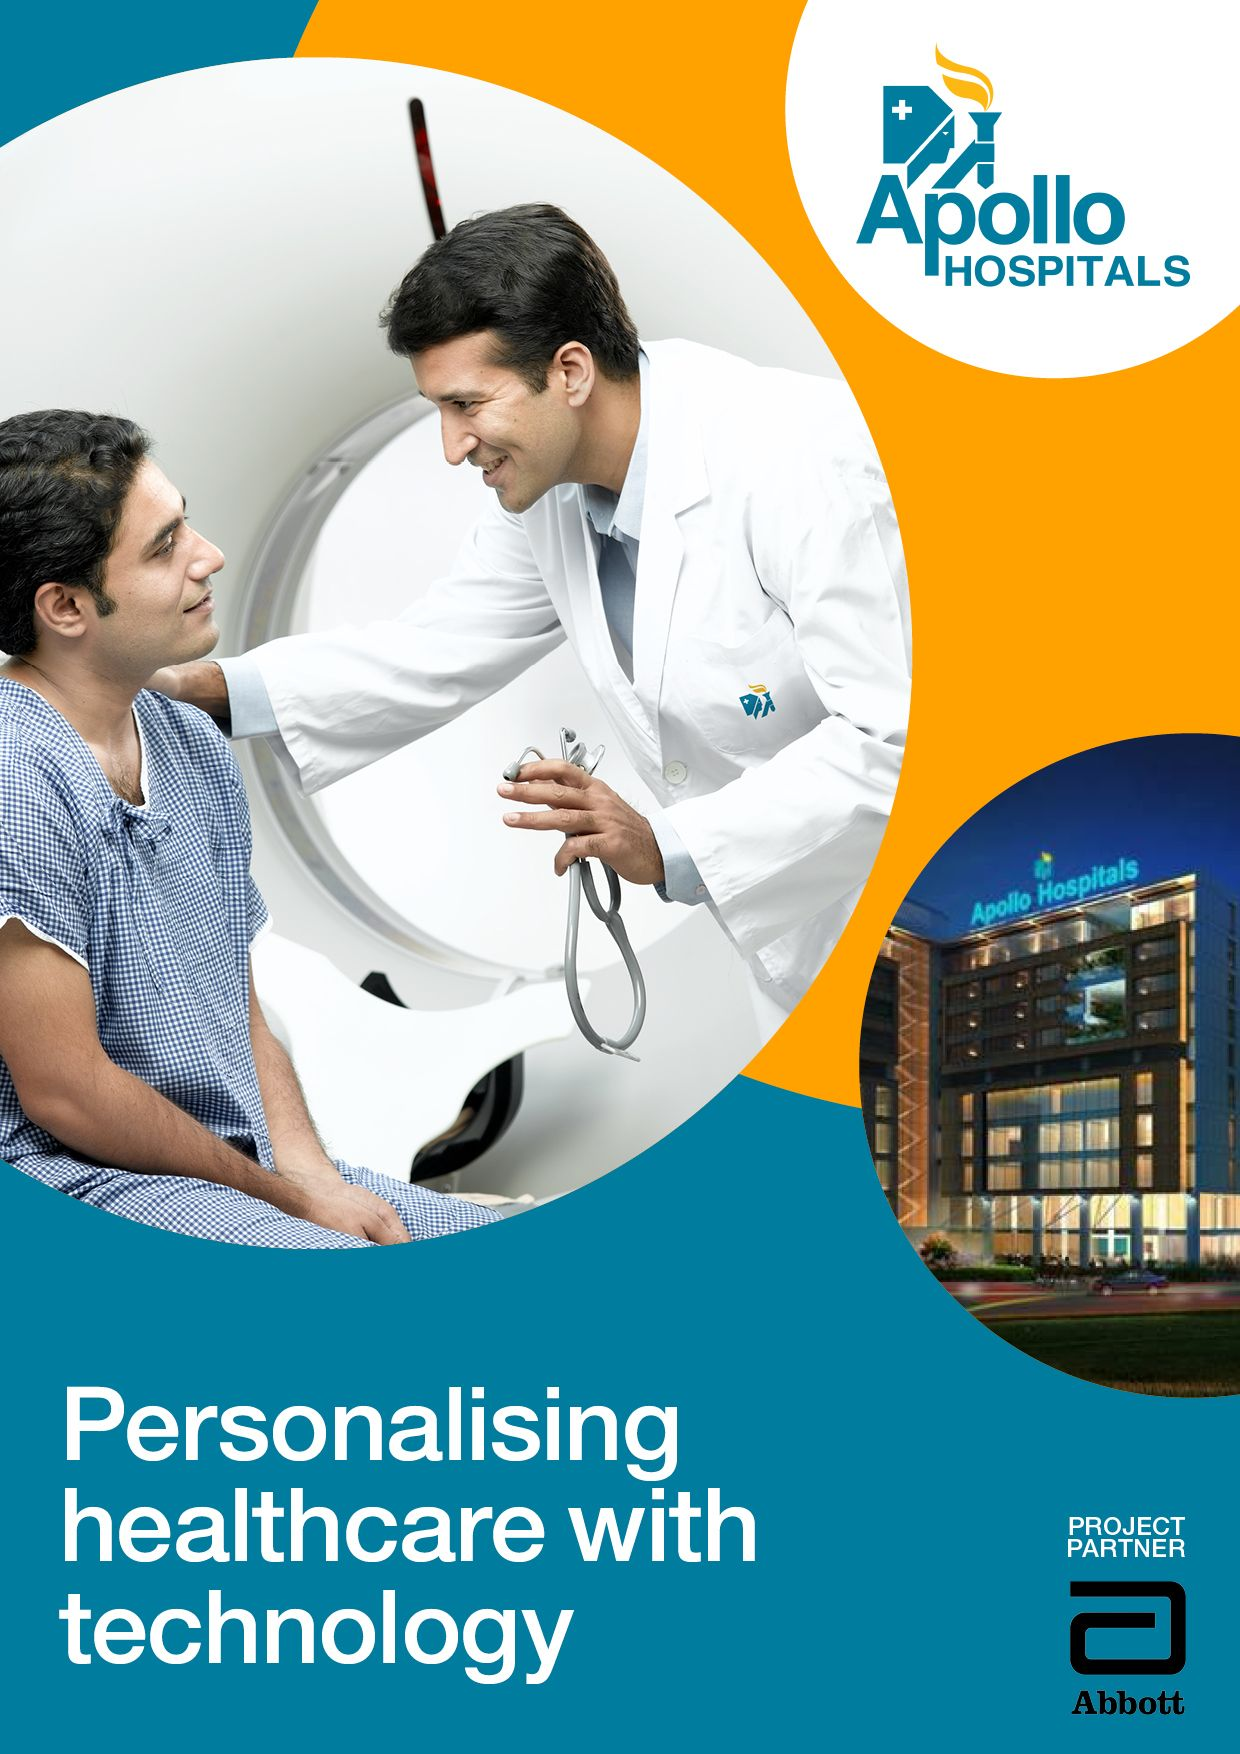 Apollo Hospitals: Personalizing healthcare with technology ...